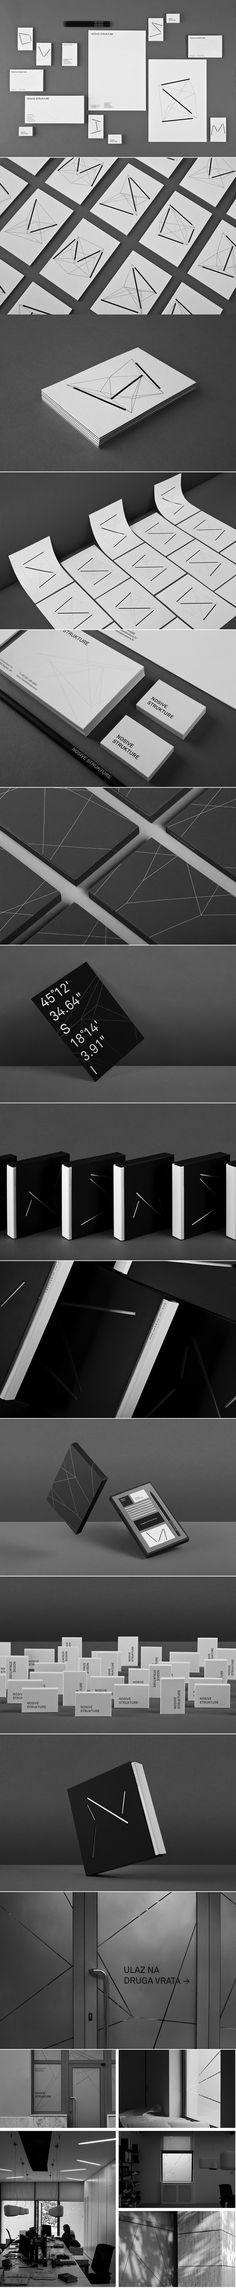 Nosive strukture by Bunch engineer design studio #branding #packaging PD